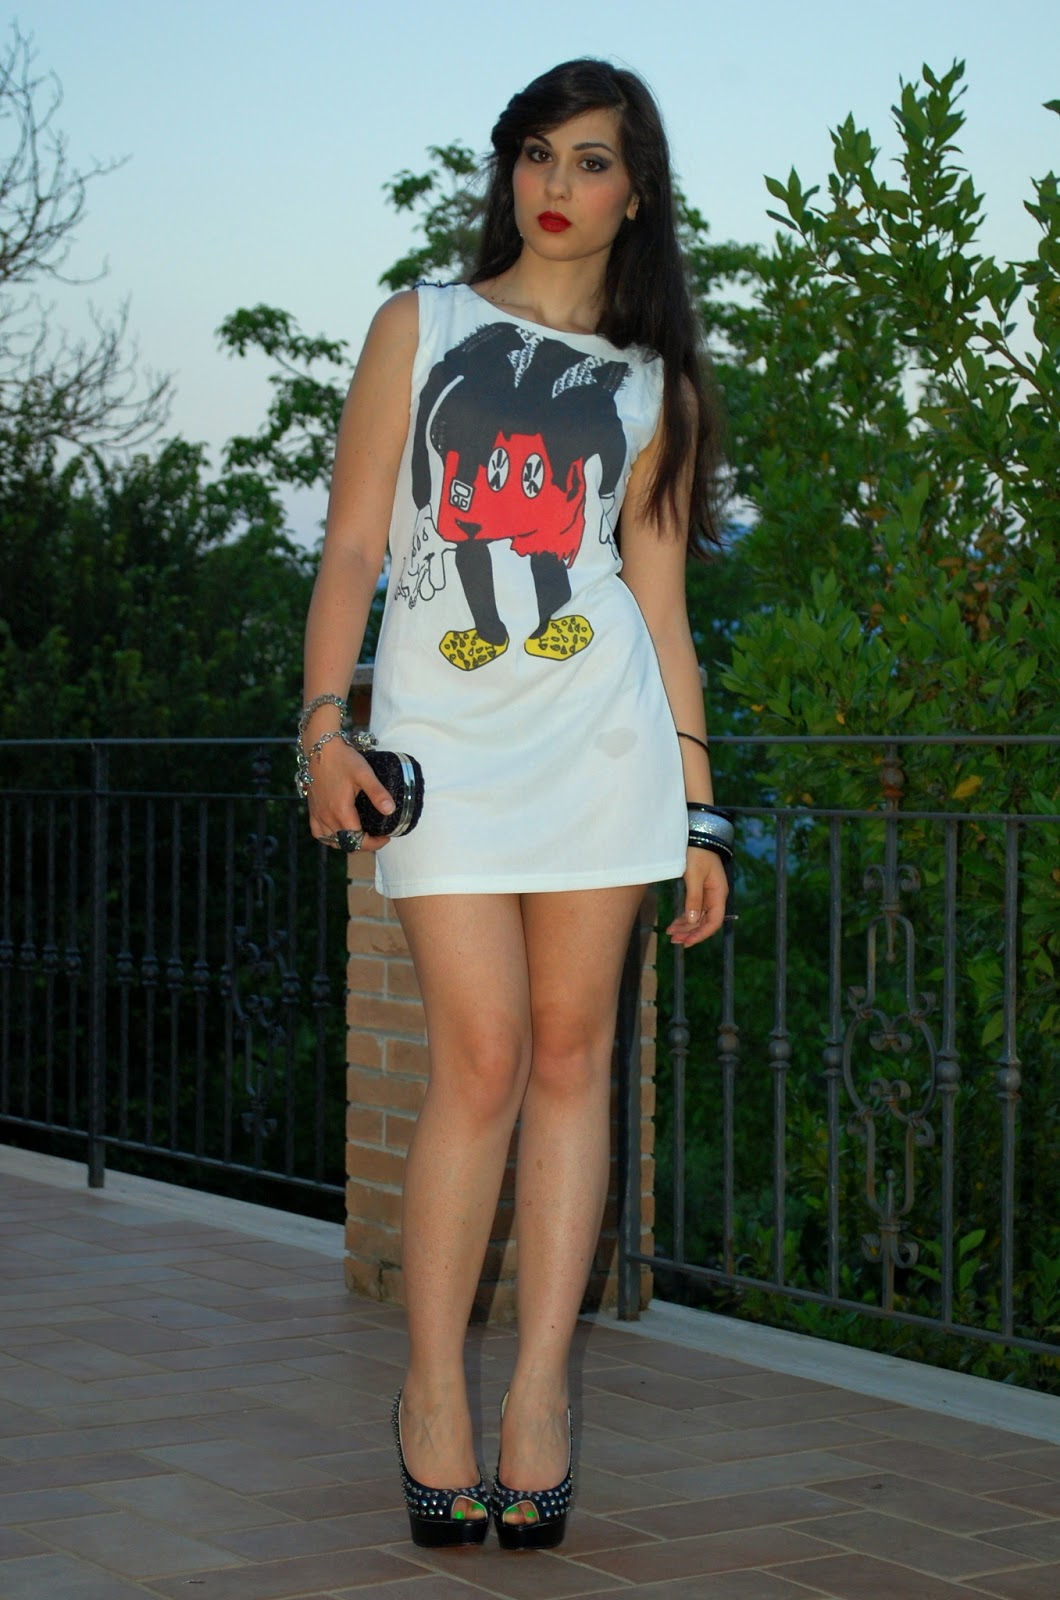 In The Jungle Of Fashion Is That Mickey Mouse Tendencies Tshirt Uk Punk Cokelat Tua S Link Http Maykoolcom Dresses Catoon Printed Round Neck Rivets Decor Dress 005540html I Hope You Like This Look